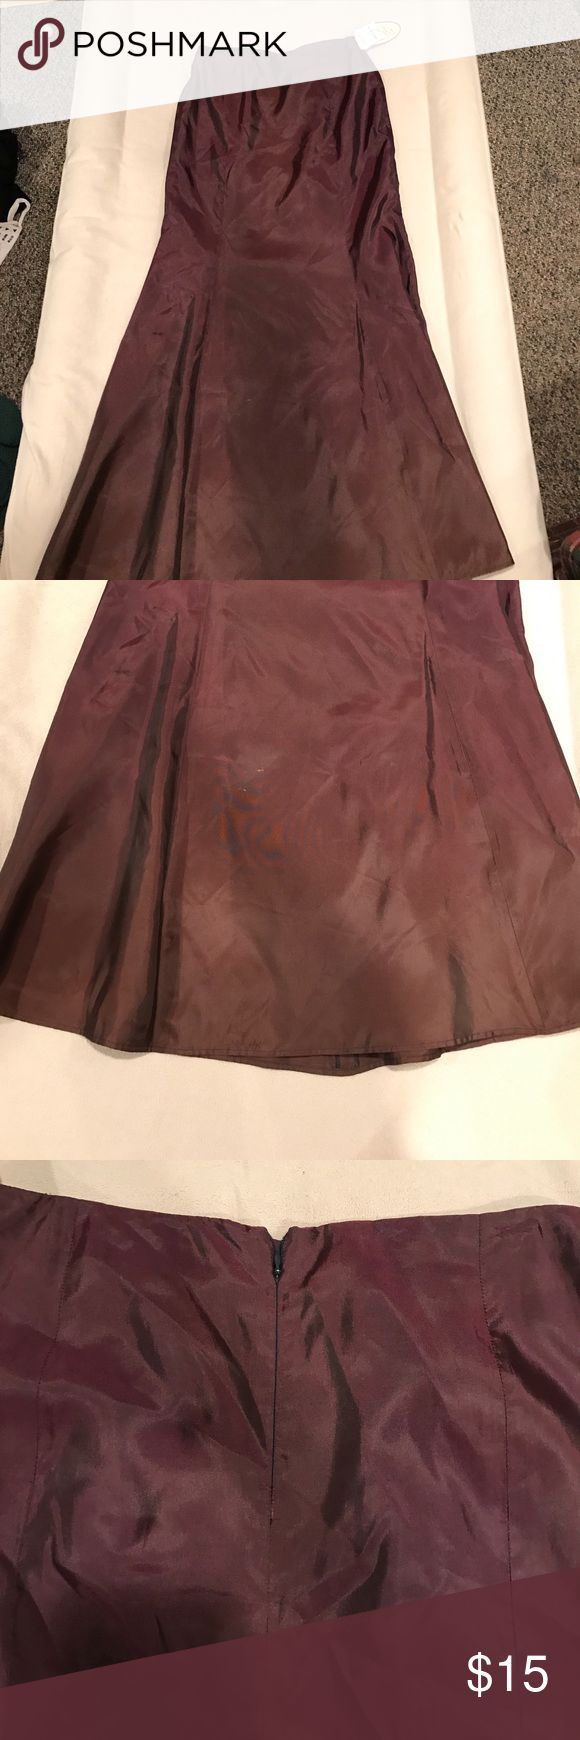 Long Satin Dress Never worn! NWT, long satin dress. So beautiful. Fitted on top and flare on bottom. Dresses Strapless